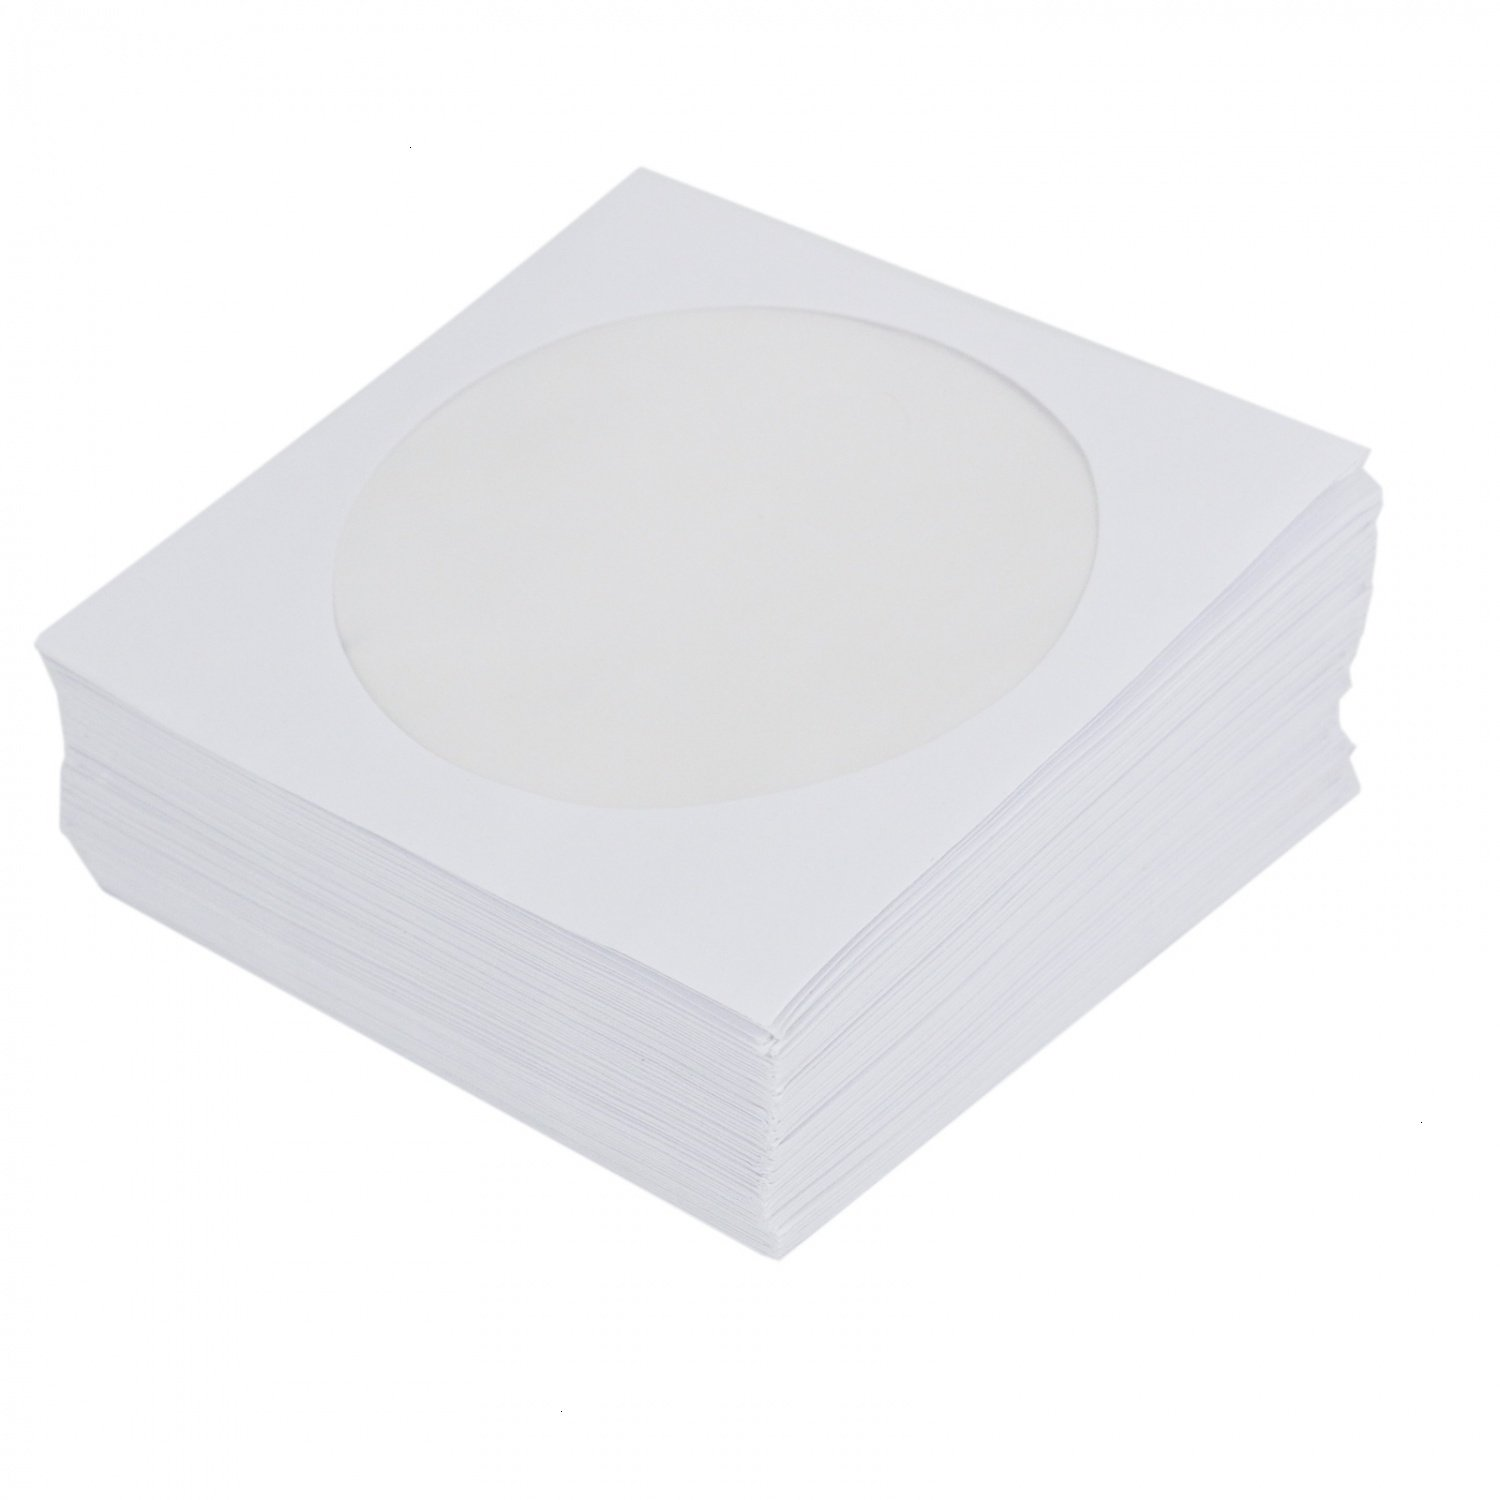 TOPMO 100 PCS Paper CD DVD White Sleeves Envelope with Clear Window